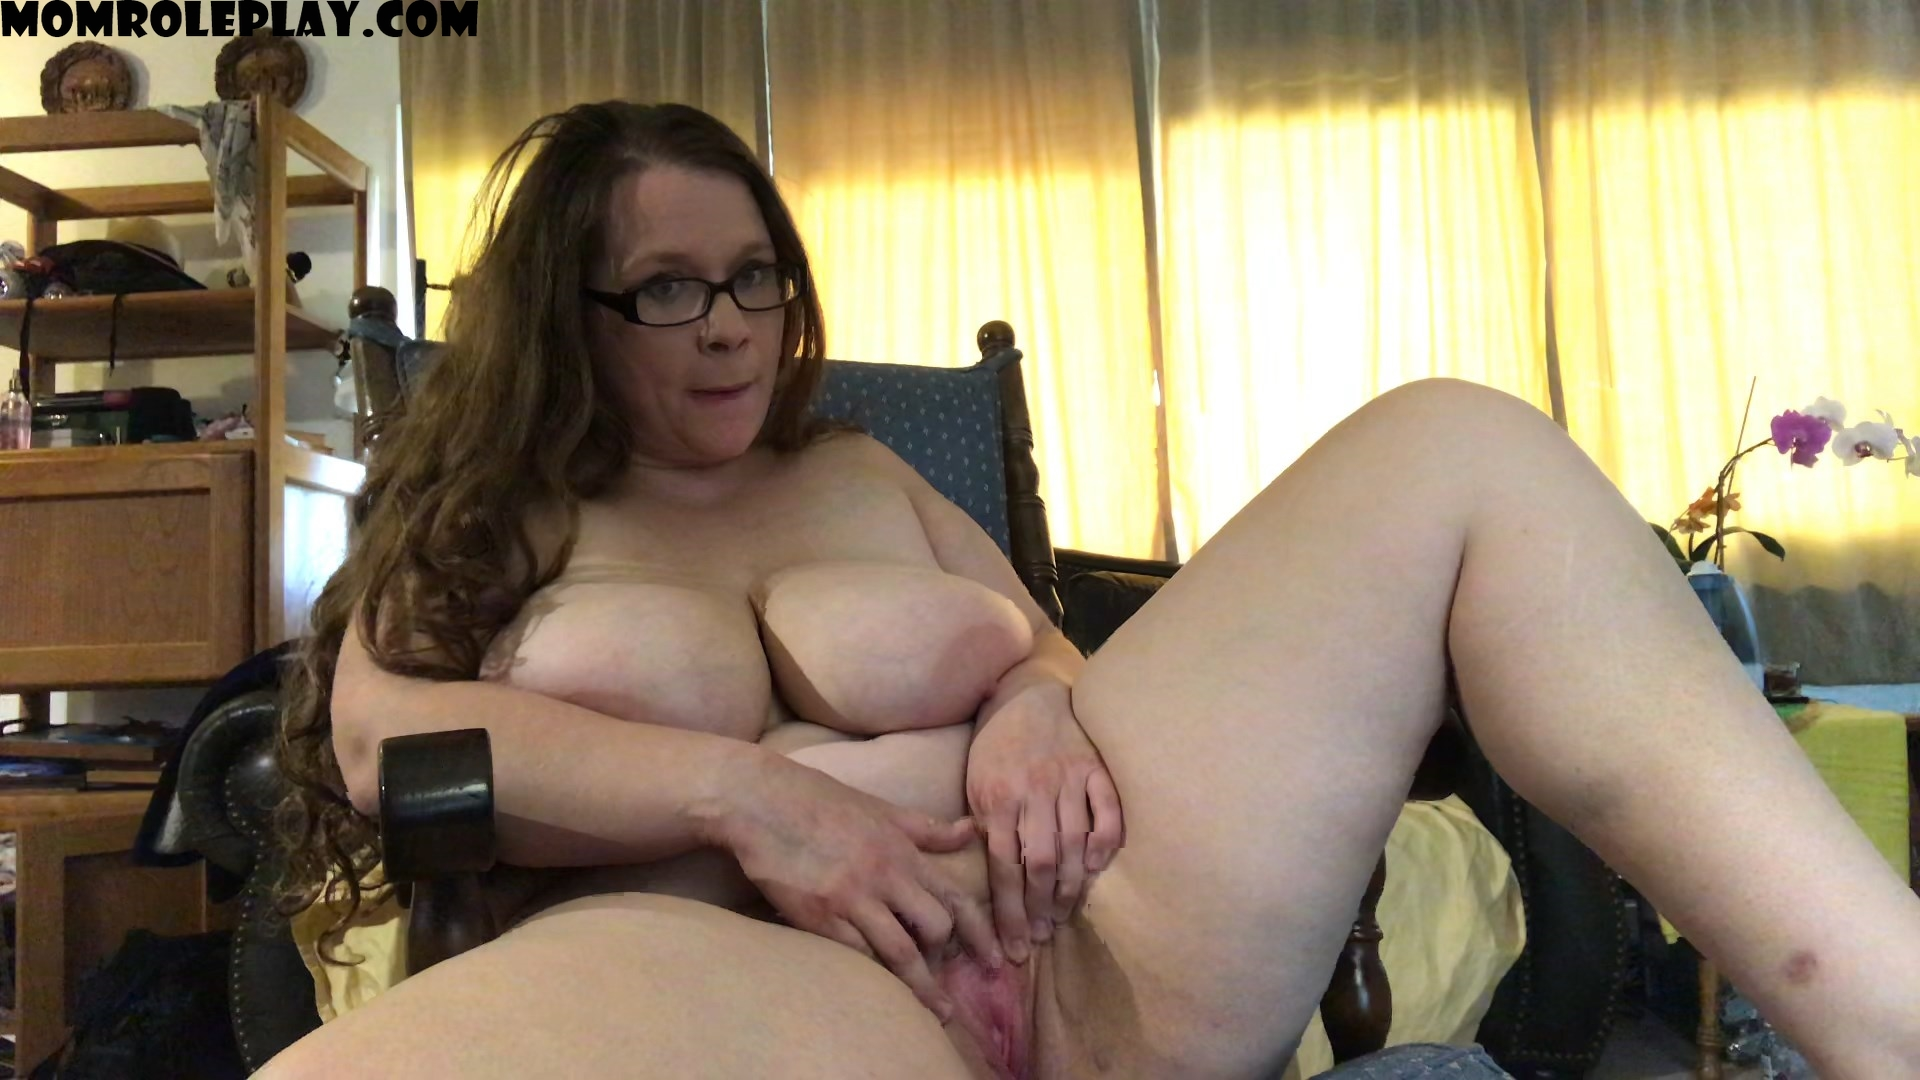 Dreaming Daily - Taboo step mommy misses her step son